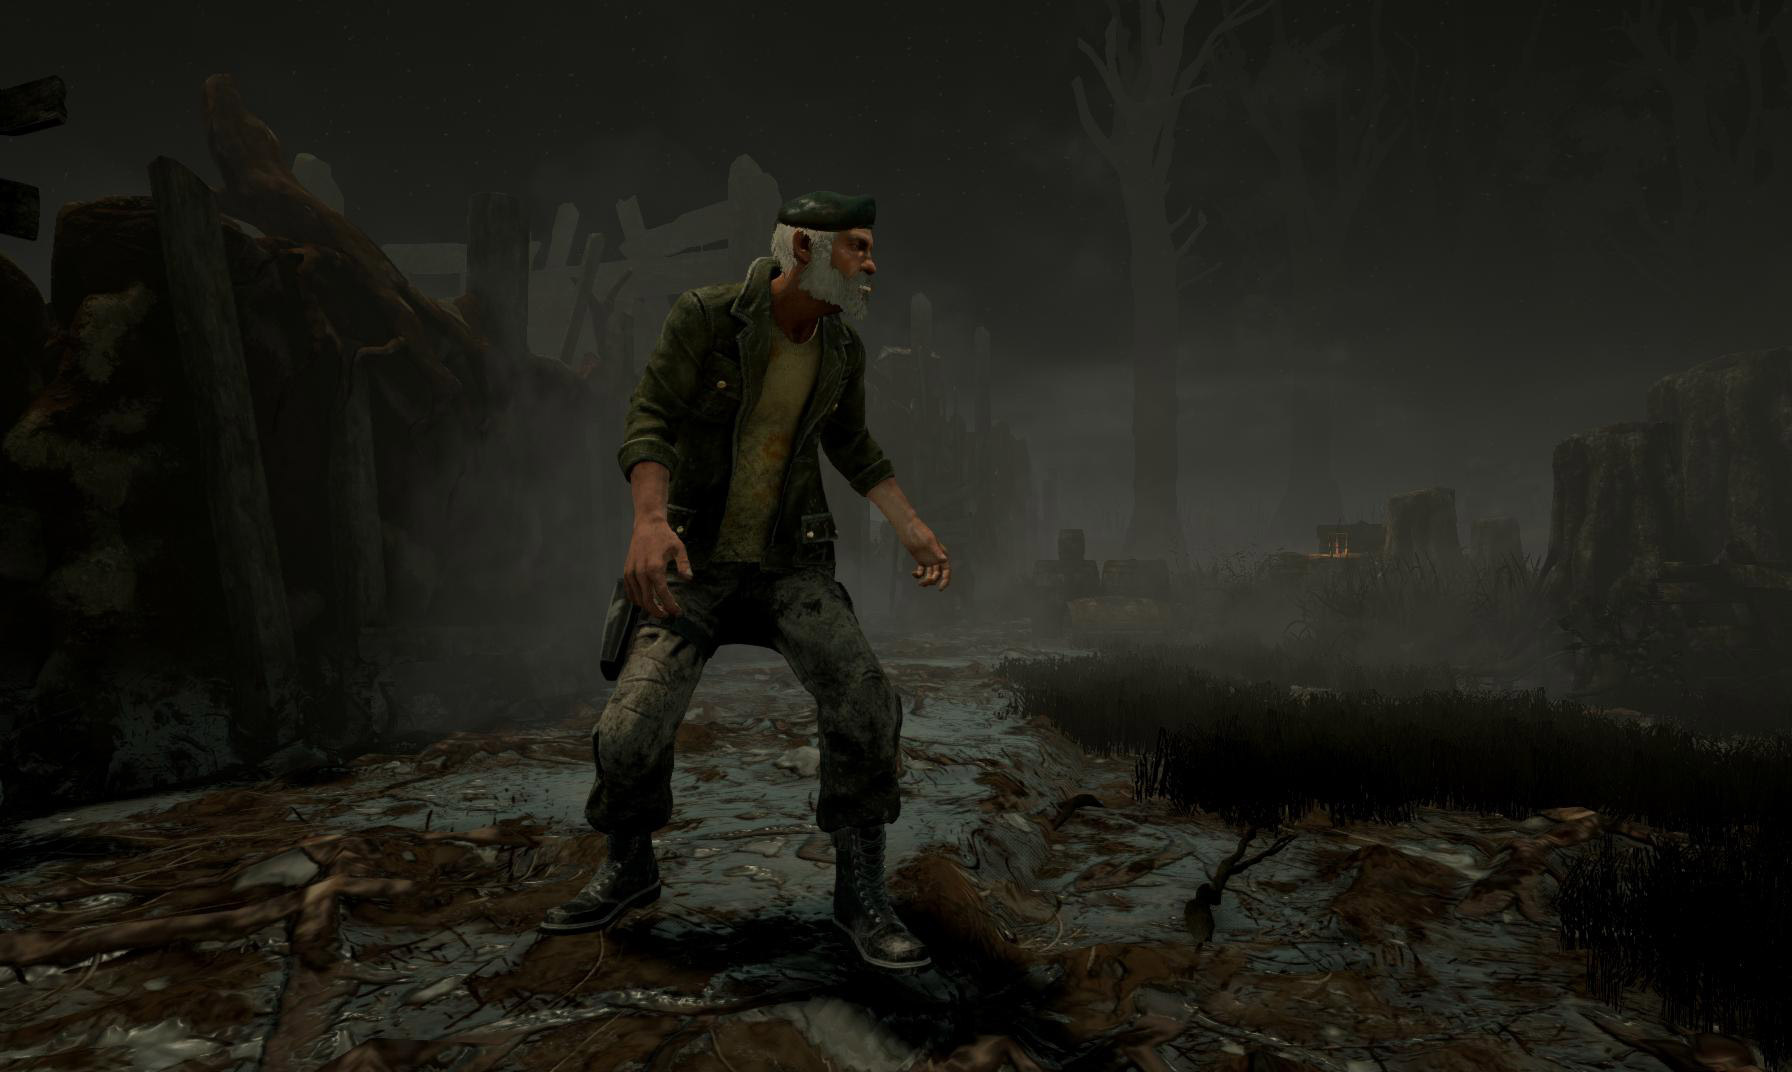 Left 4 Dead crossover comes to Dead by Daylight today - Polygon